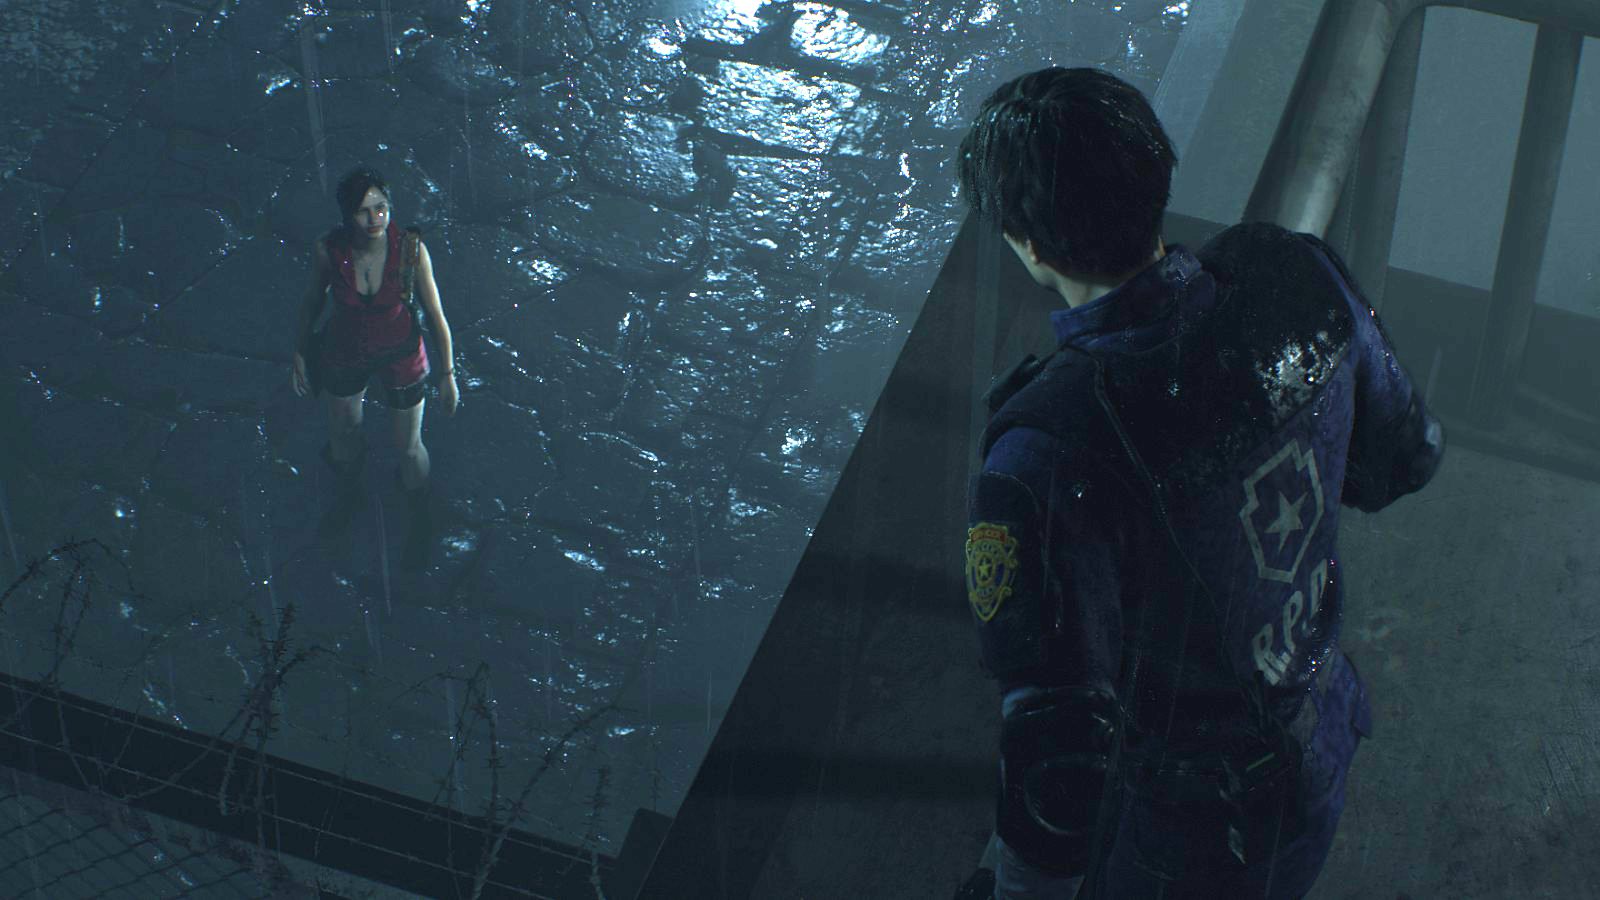 Resident Evil 2 Remake Original Outfits - How to Unlock